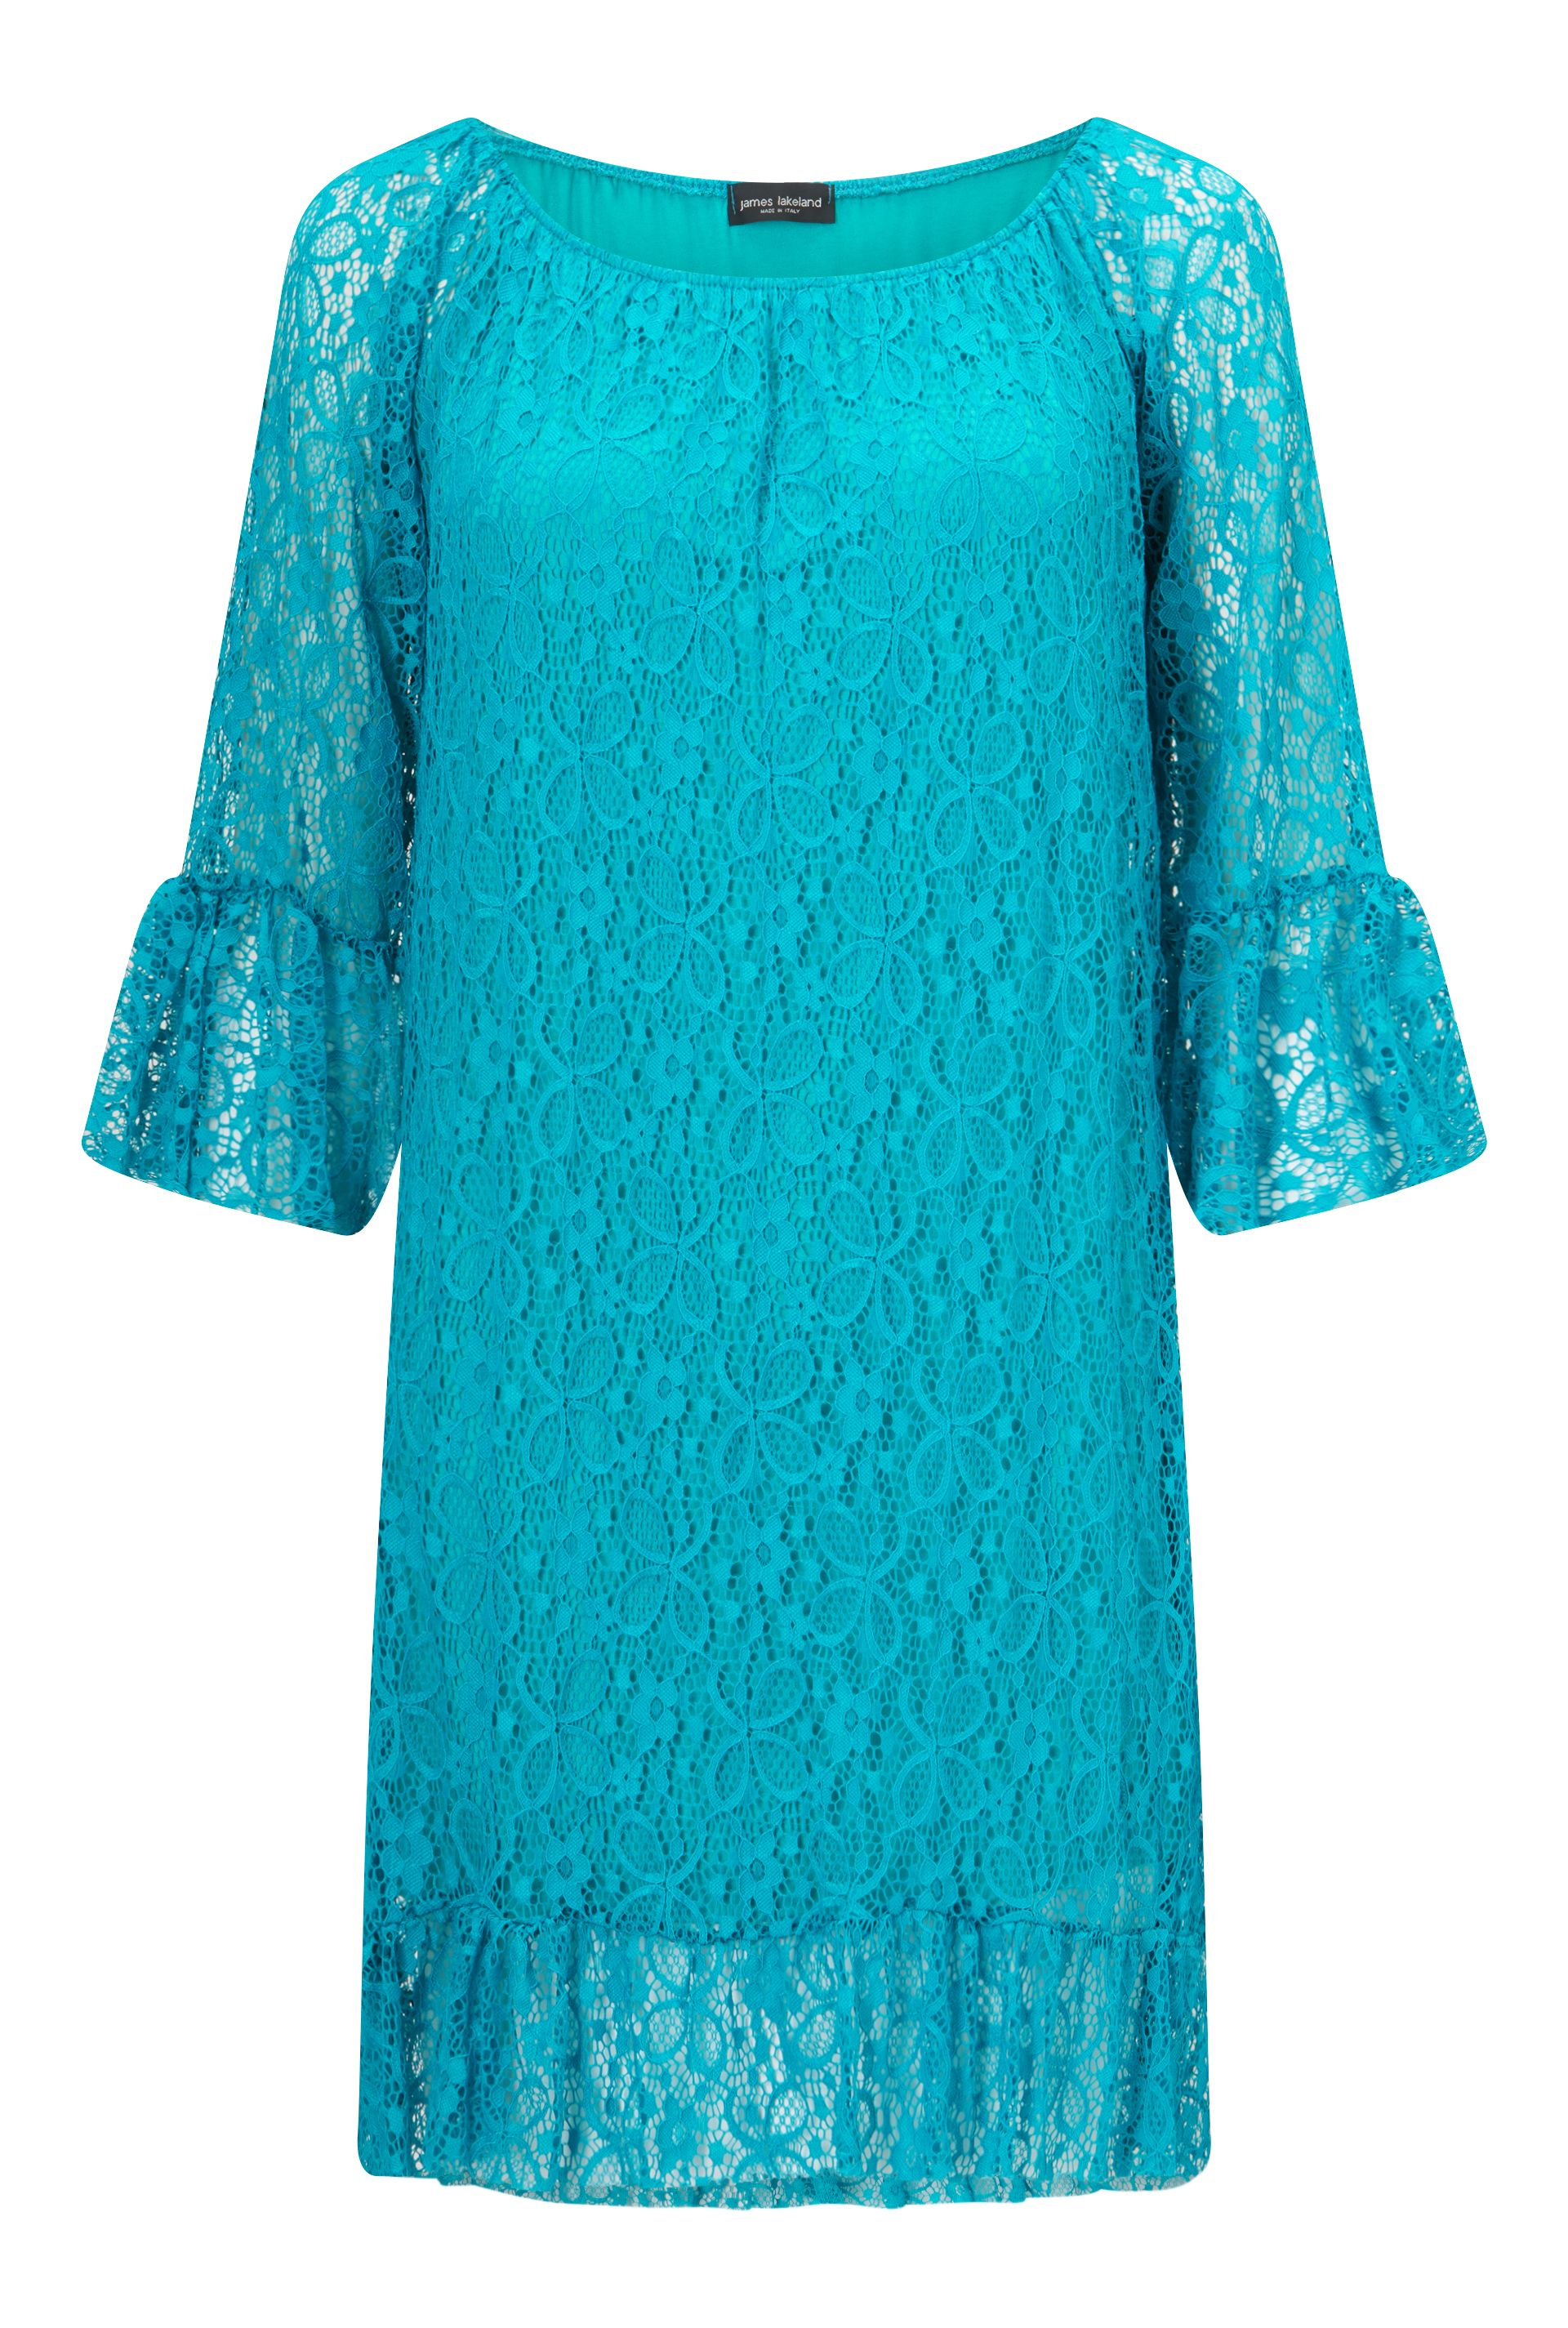 James Lakeland Lace Dress, Green